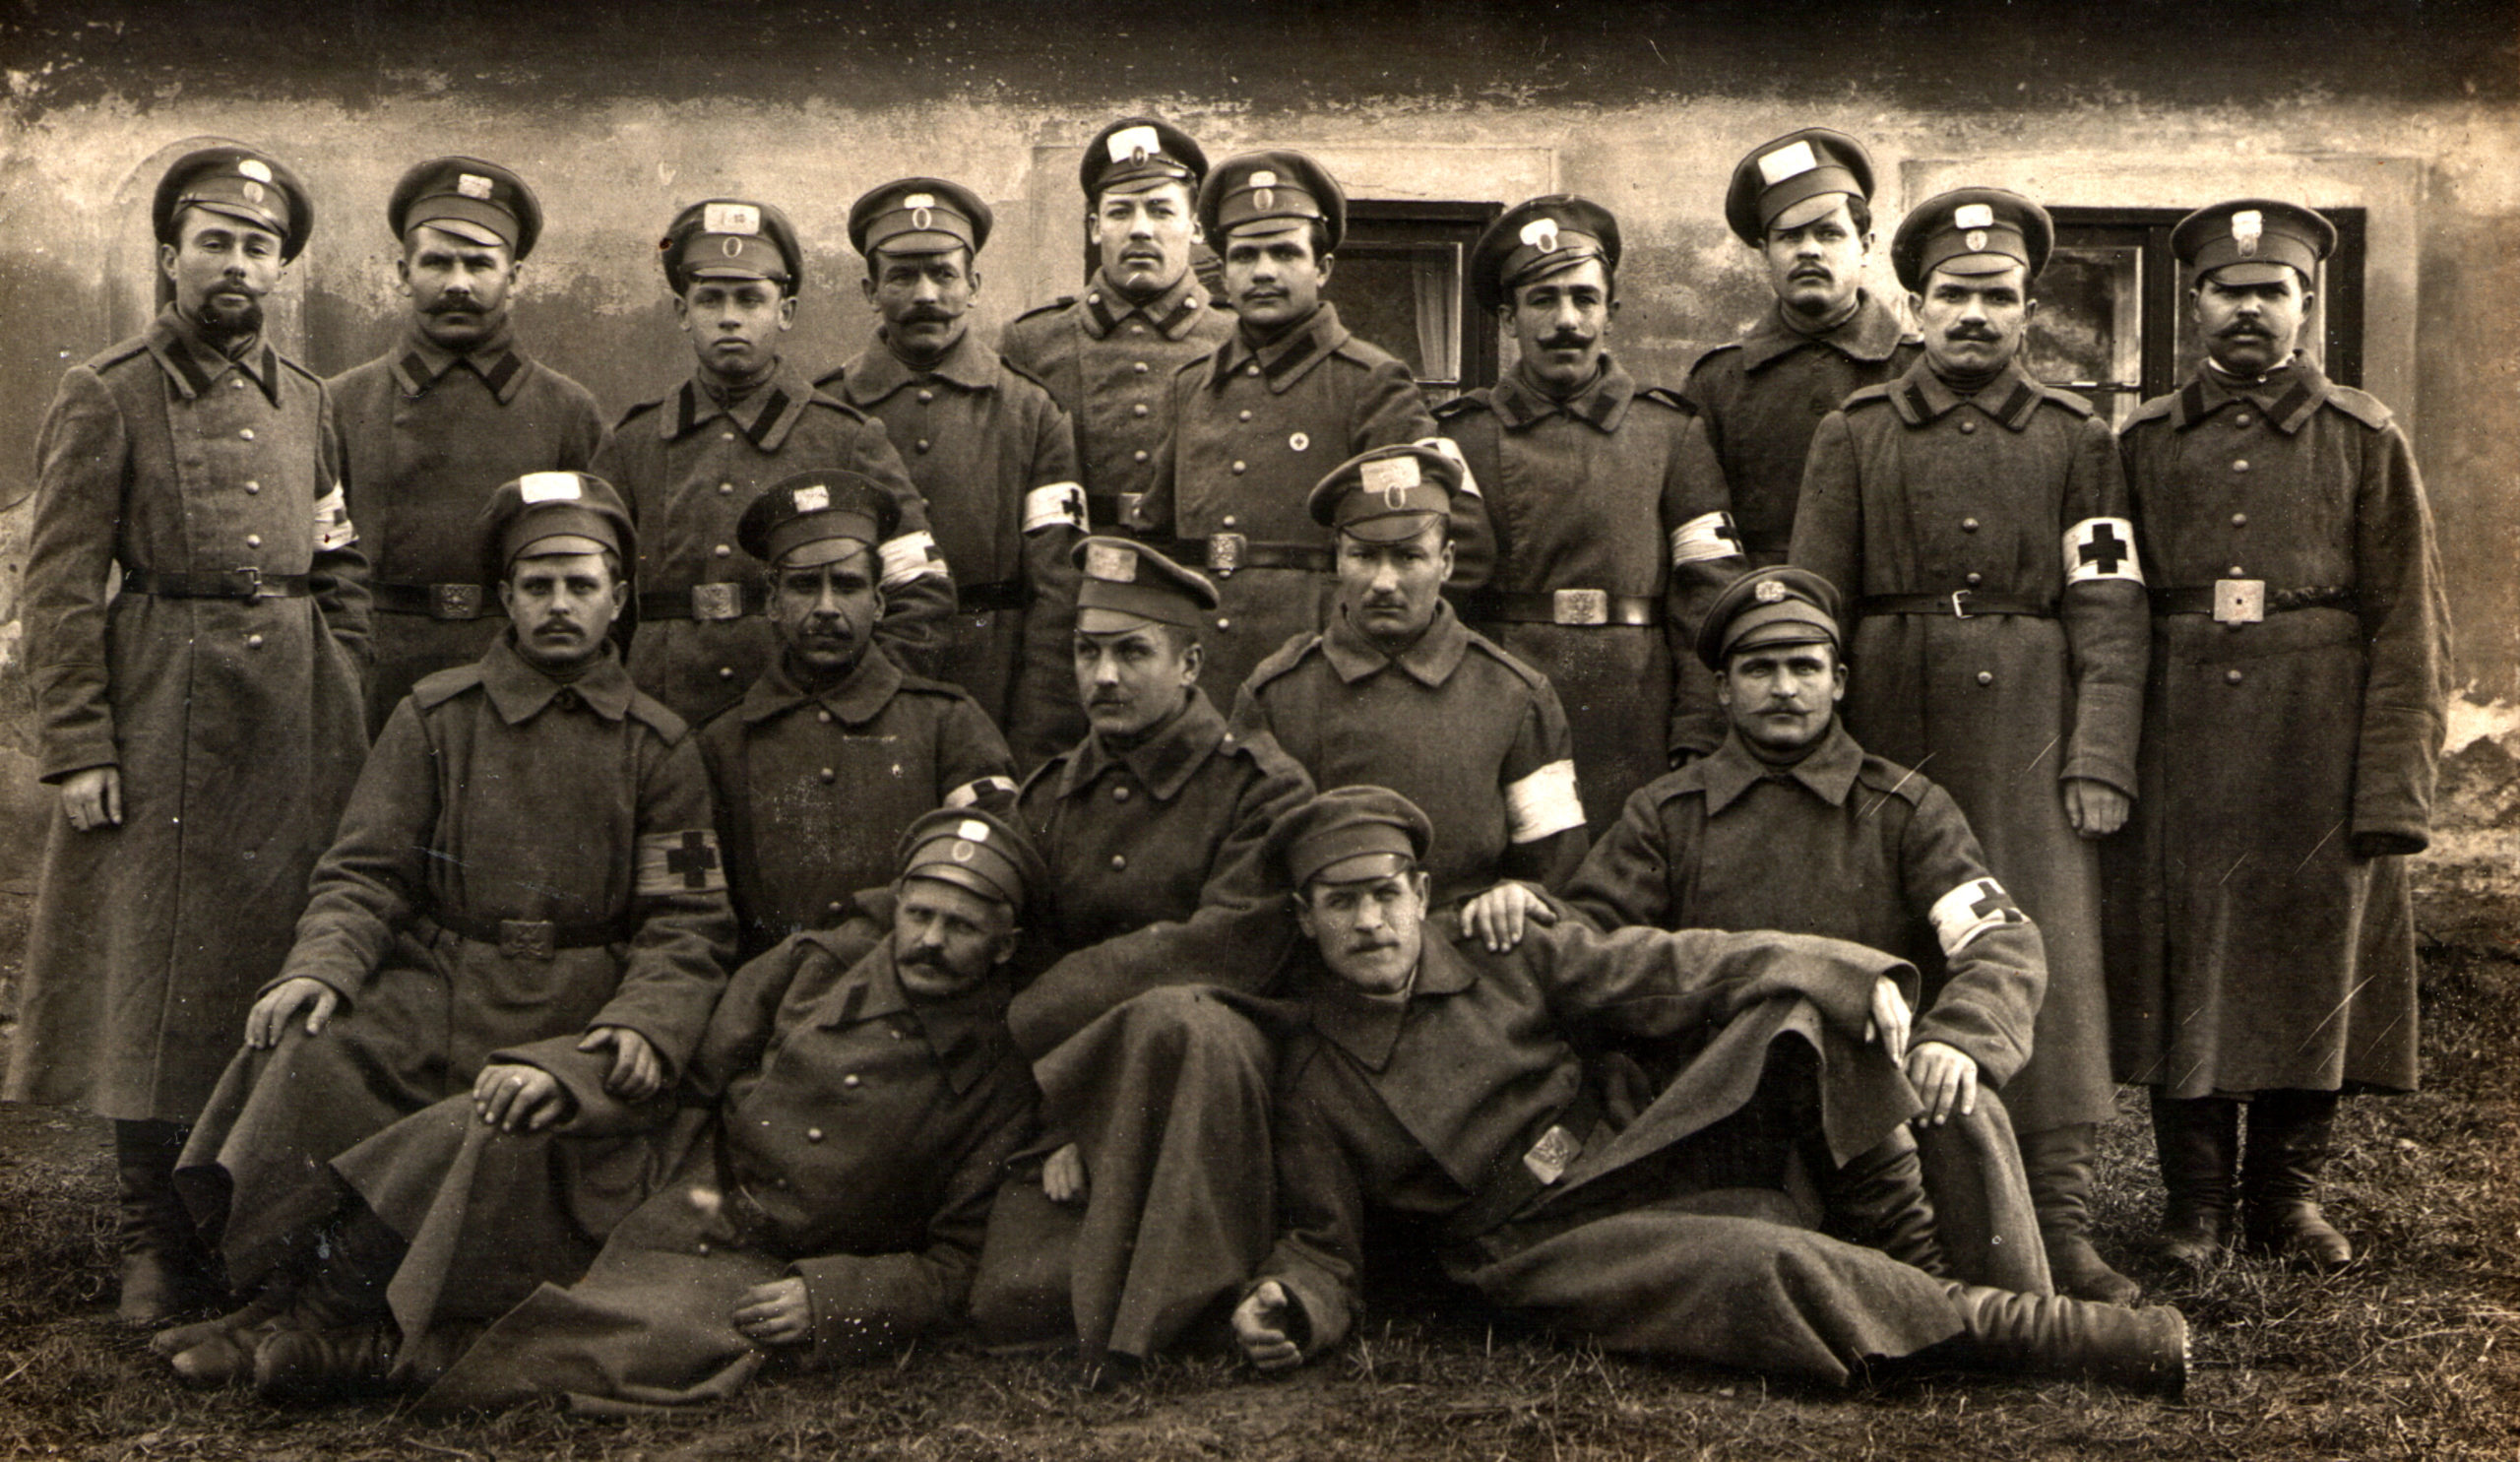 Moses Zelbert and the soldiers of the Russian army